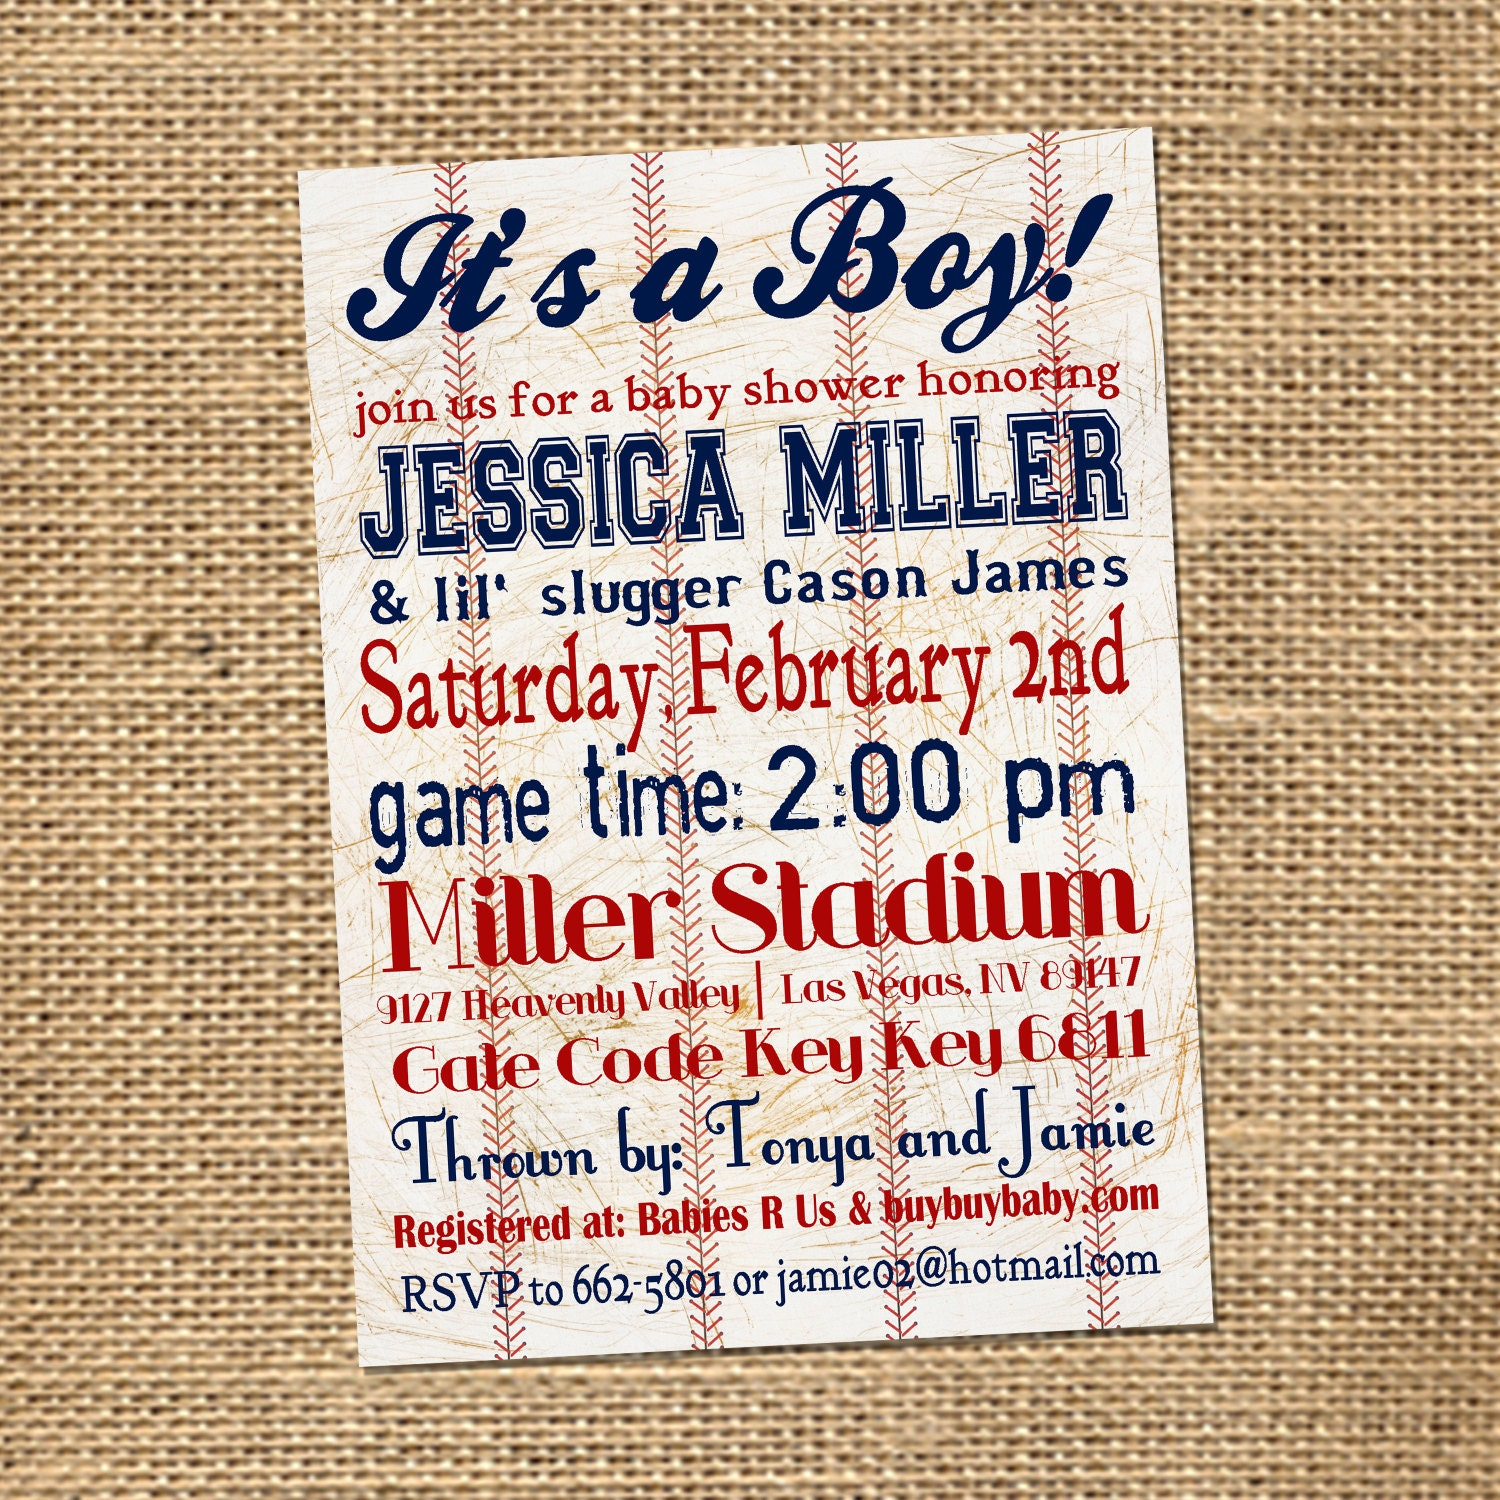 5x7 custom baseball themed baby shower by plgraphicdesign on etsy